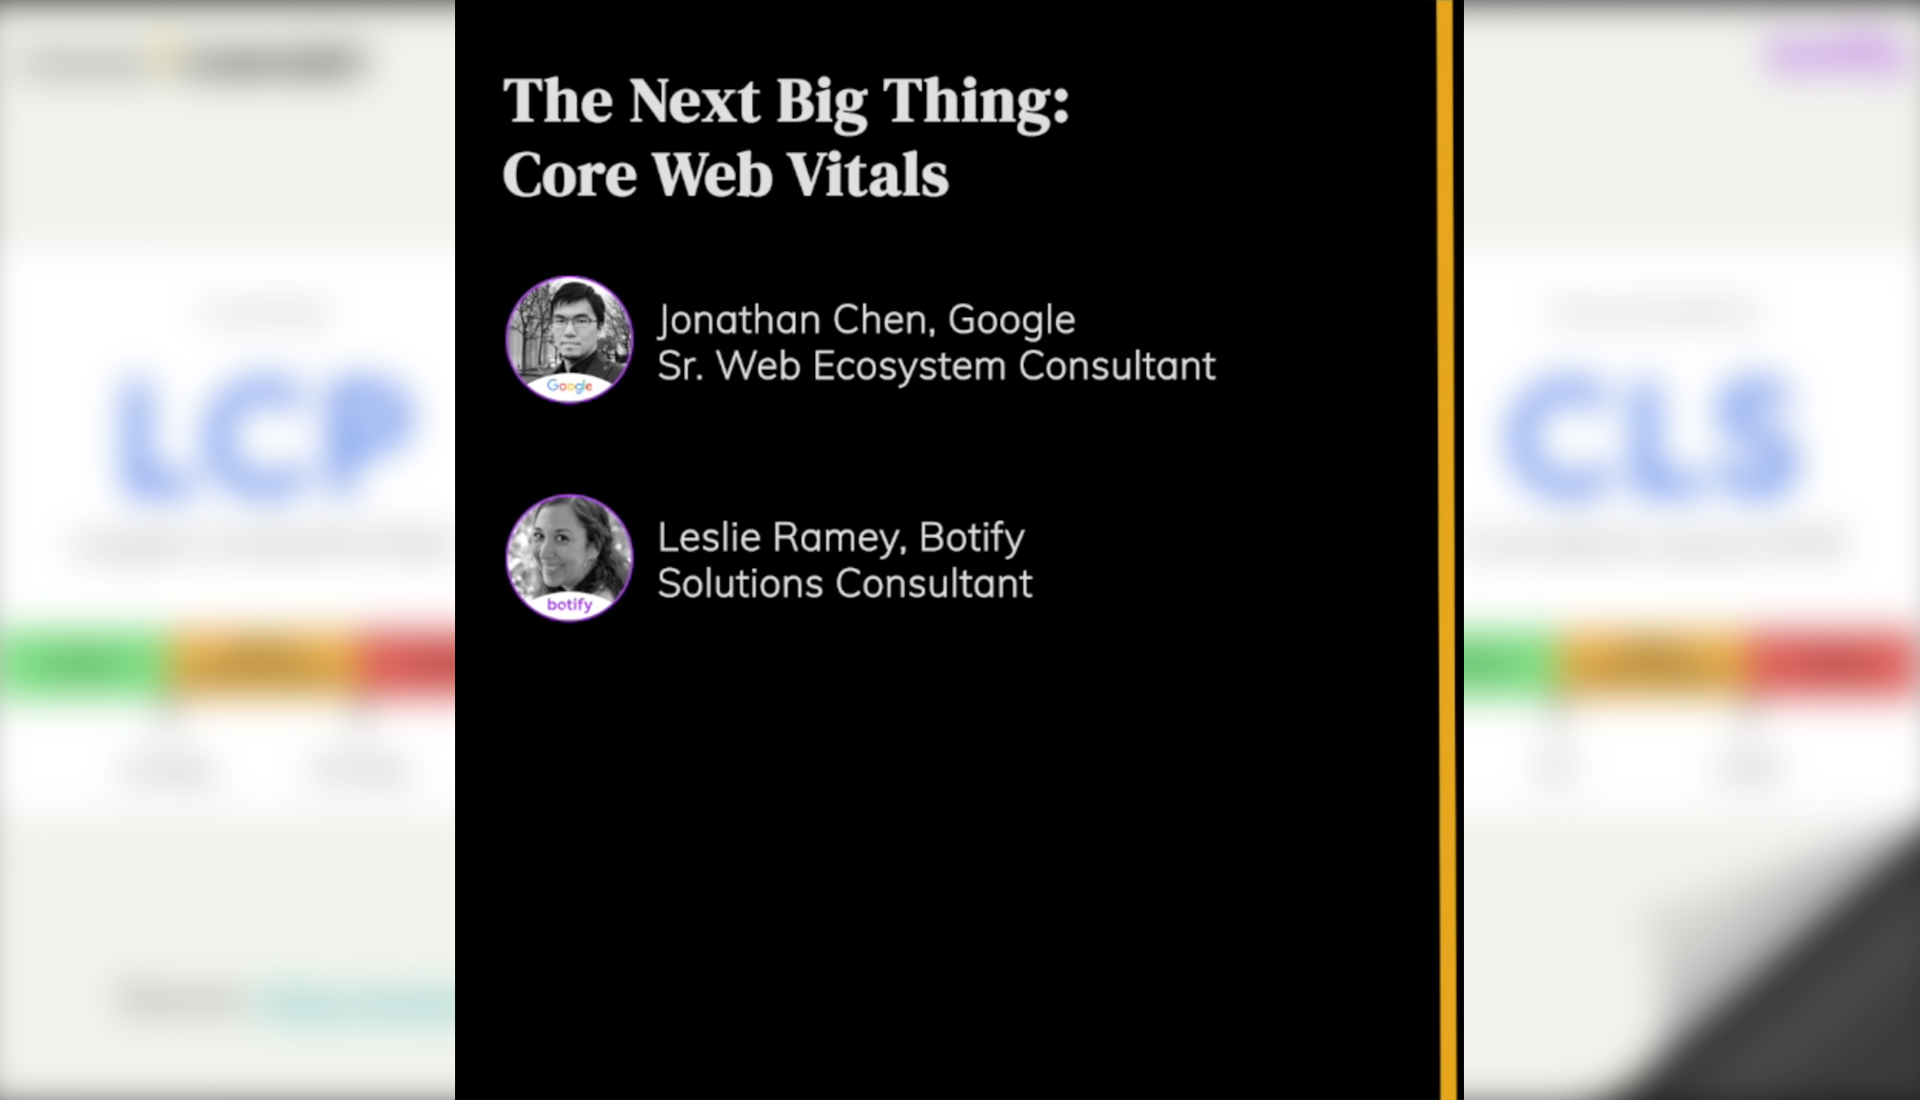 The Next Big Thing: Core Web Vitals